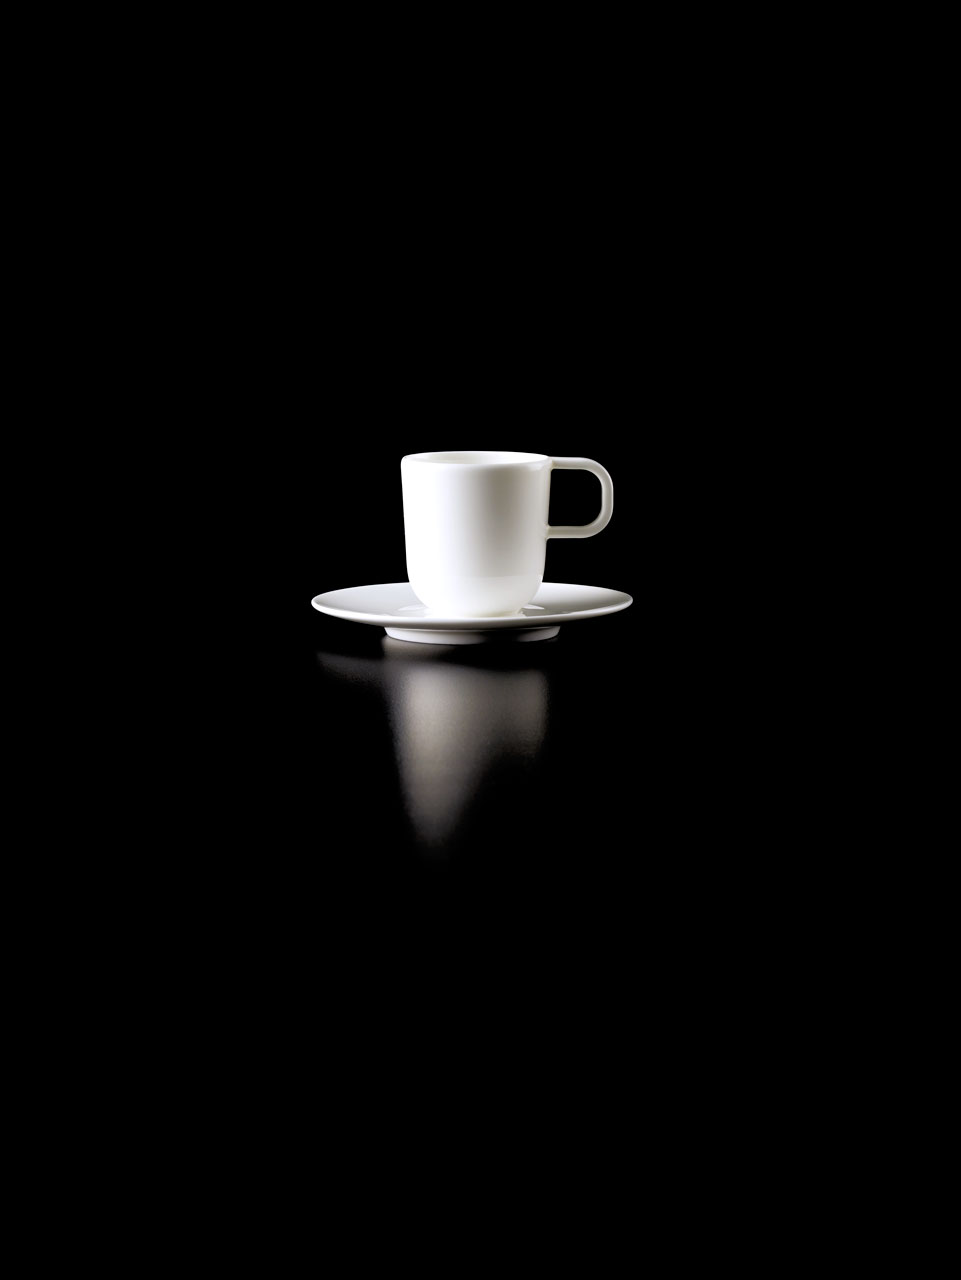 Bent Brandt - TABL white bone china S2 cup on S1 saucer